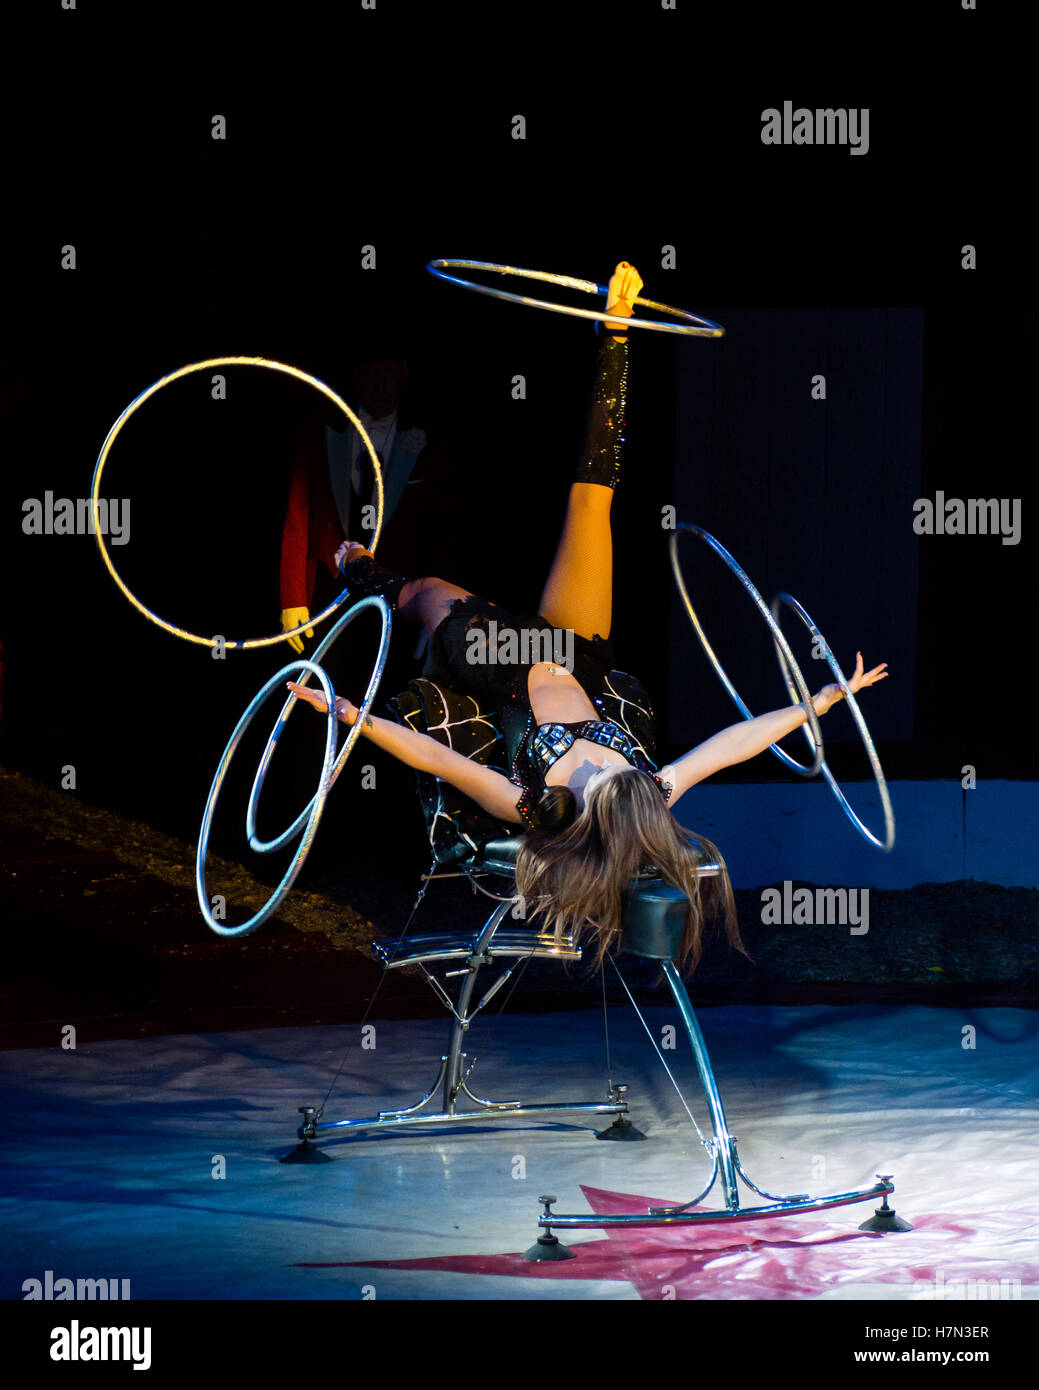 Foot-juggling aerialist Romy Michael performs at Zippo's Circus, England - Stock Image